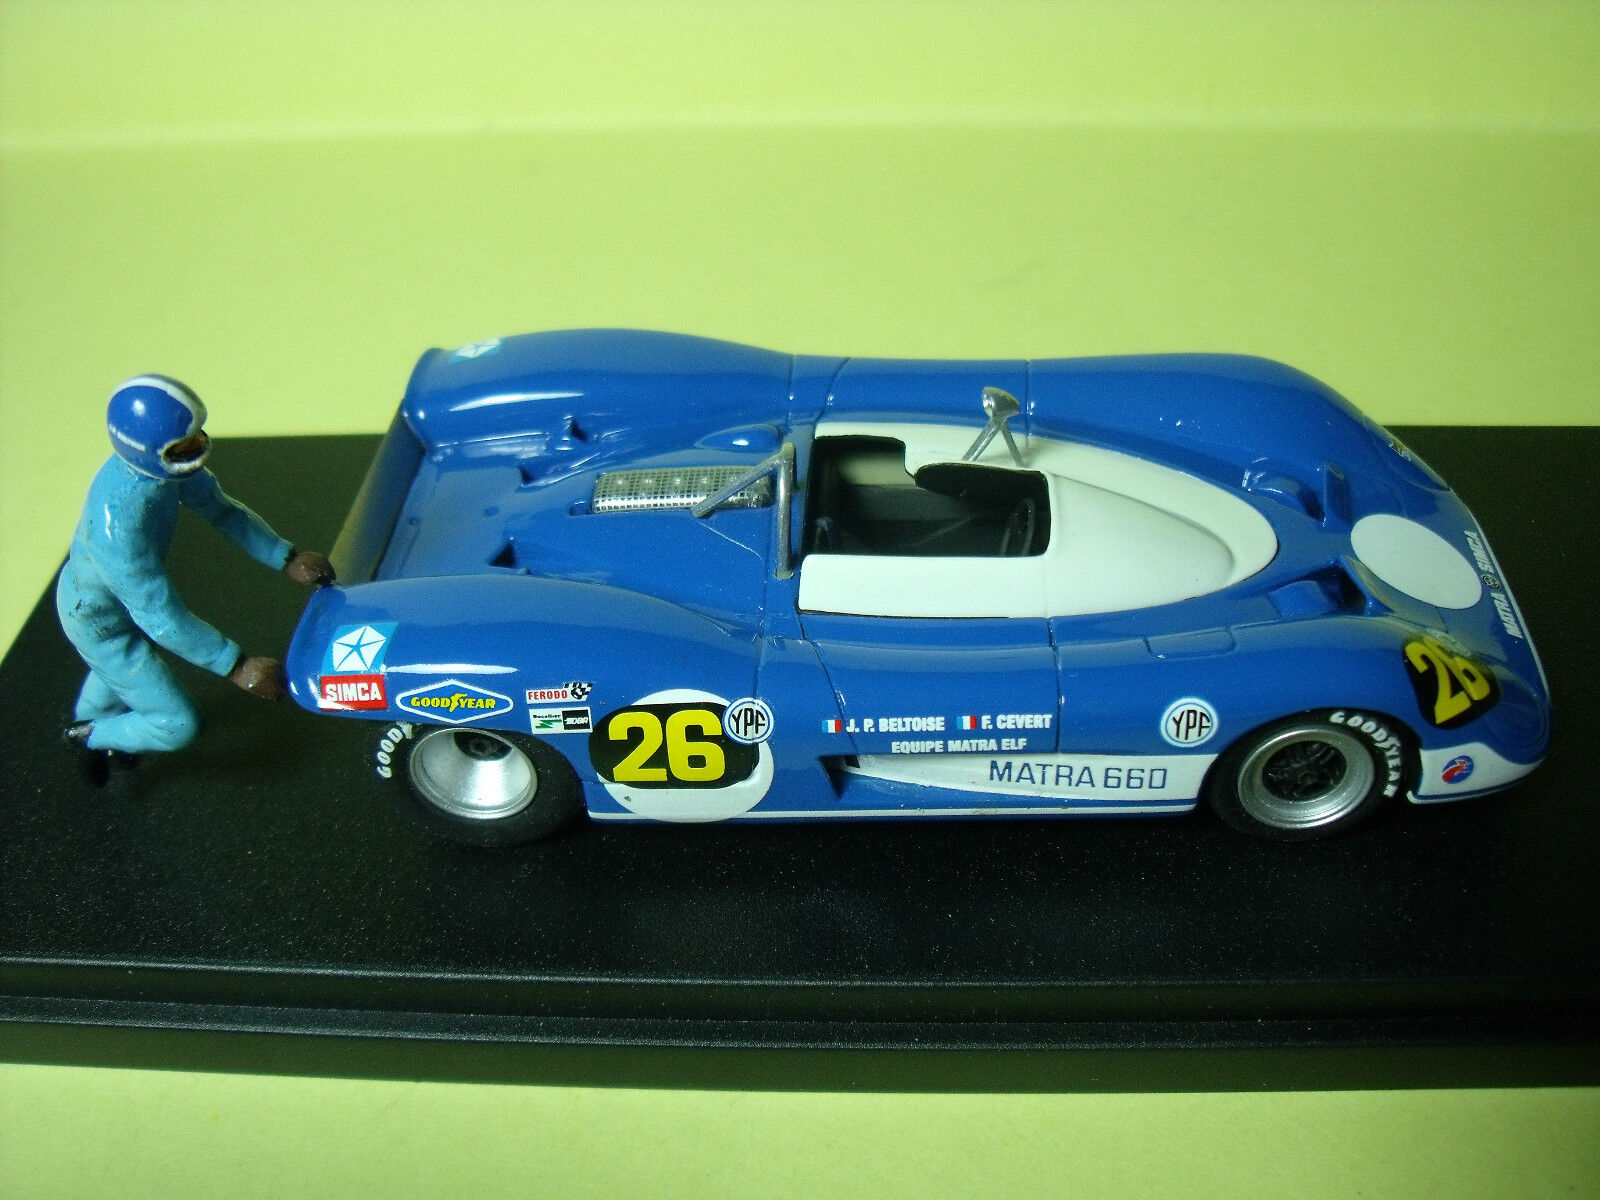 MATRA  660  BUENOS AIRES  71 VROOM  UNPAINTED  KIT  A  MONTER  1 43  NO SPARK